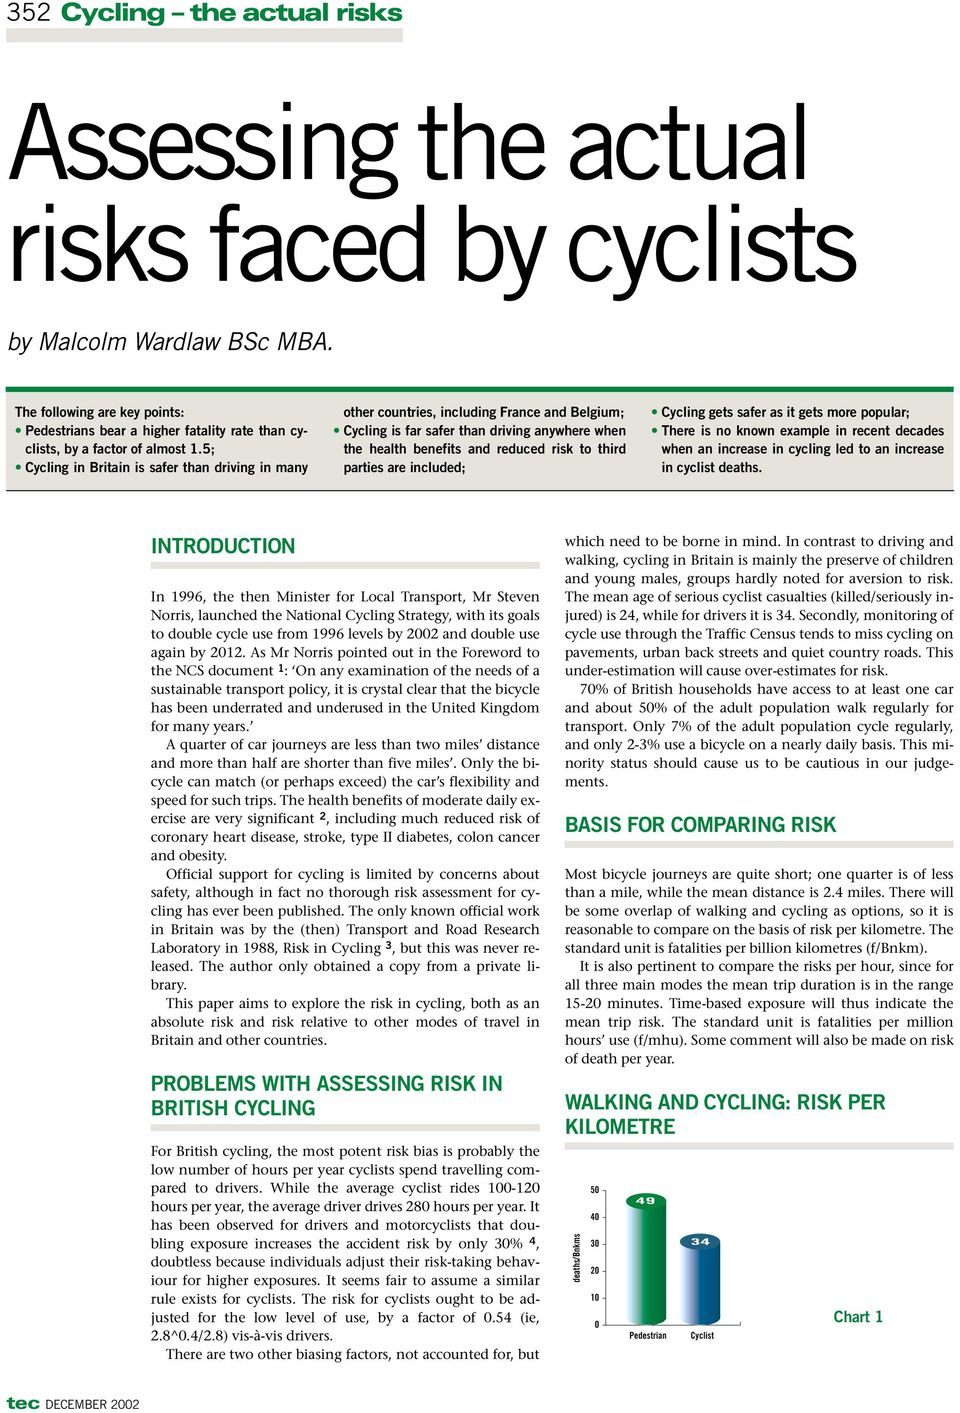 5; Cycling in Britain is safer than driving in many other countries, including France and Belgium; Cycling is far safer than driving anywhere when the health benefits and reduced risk to third